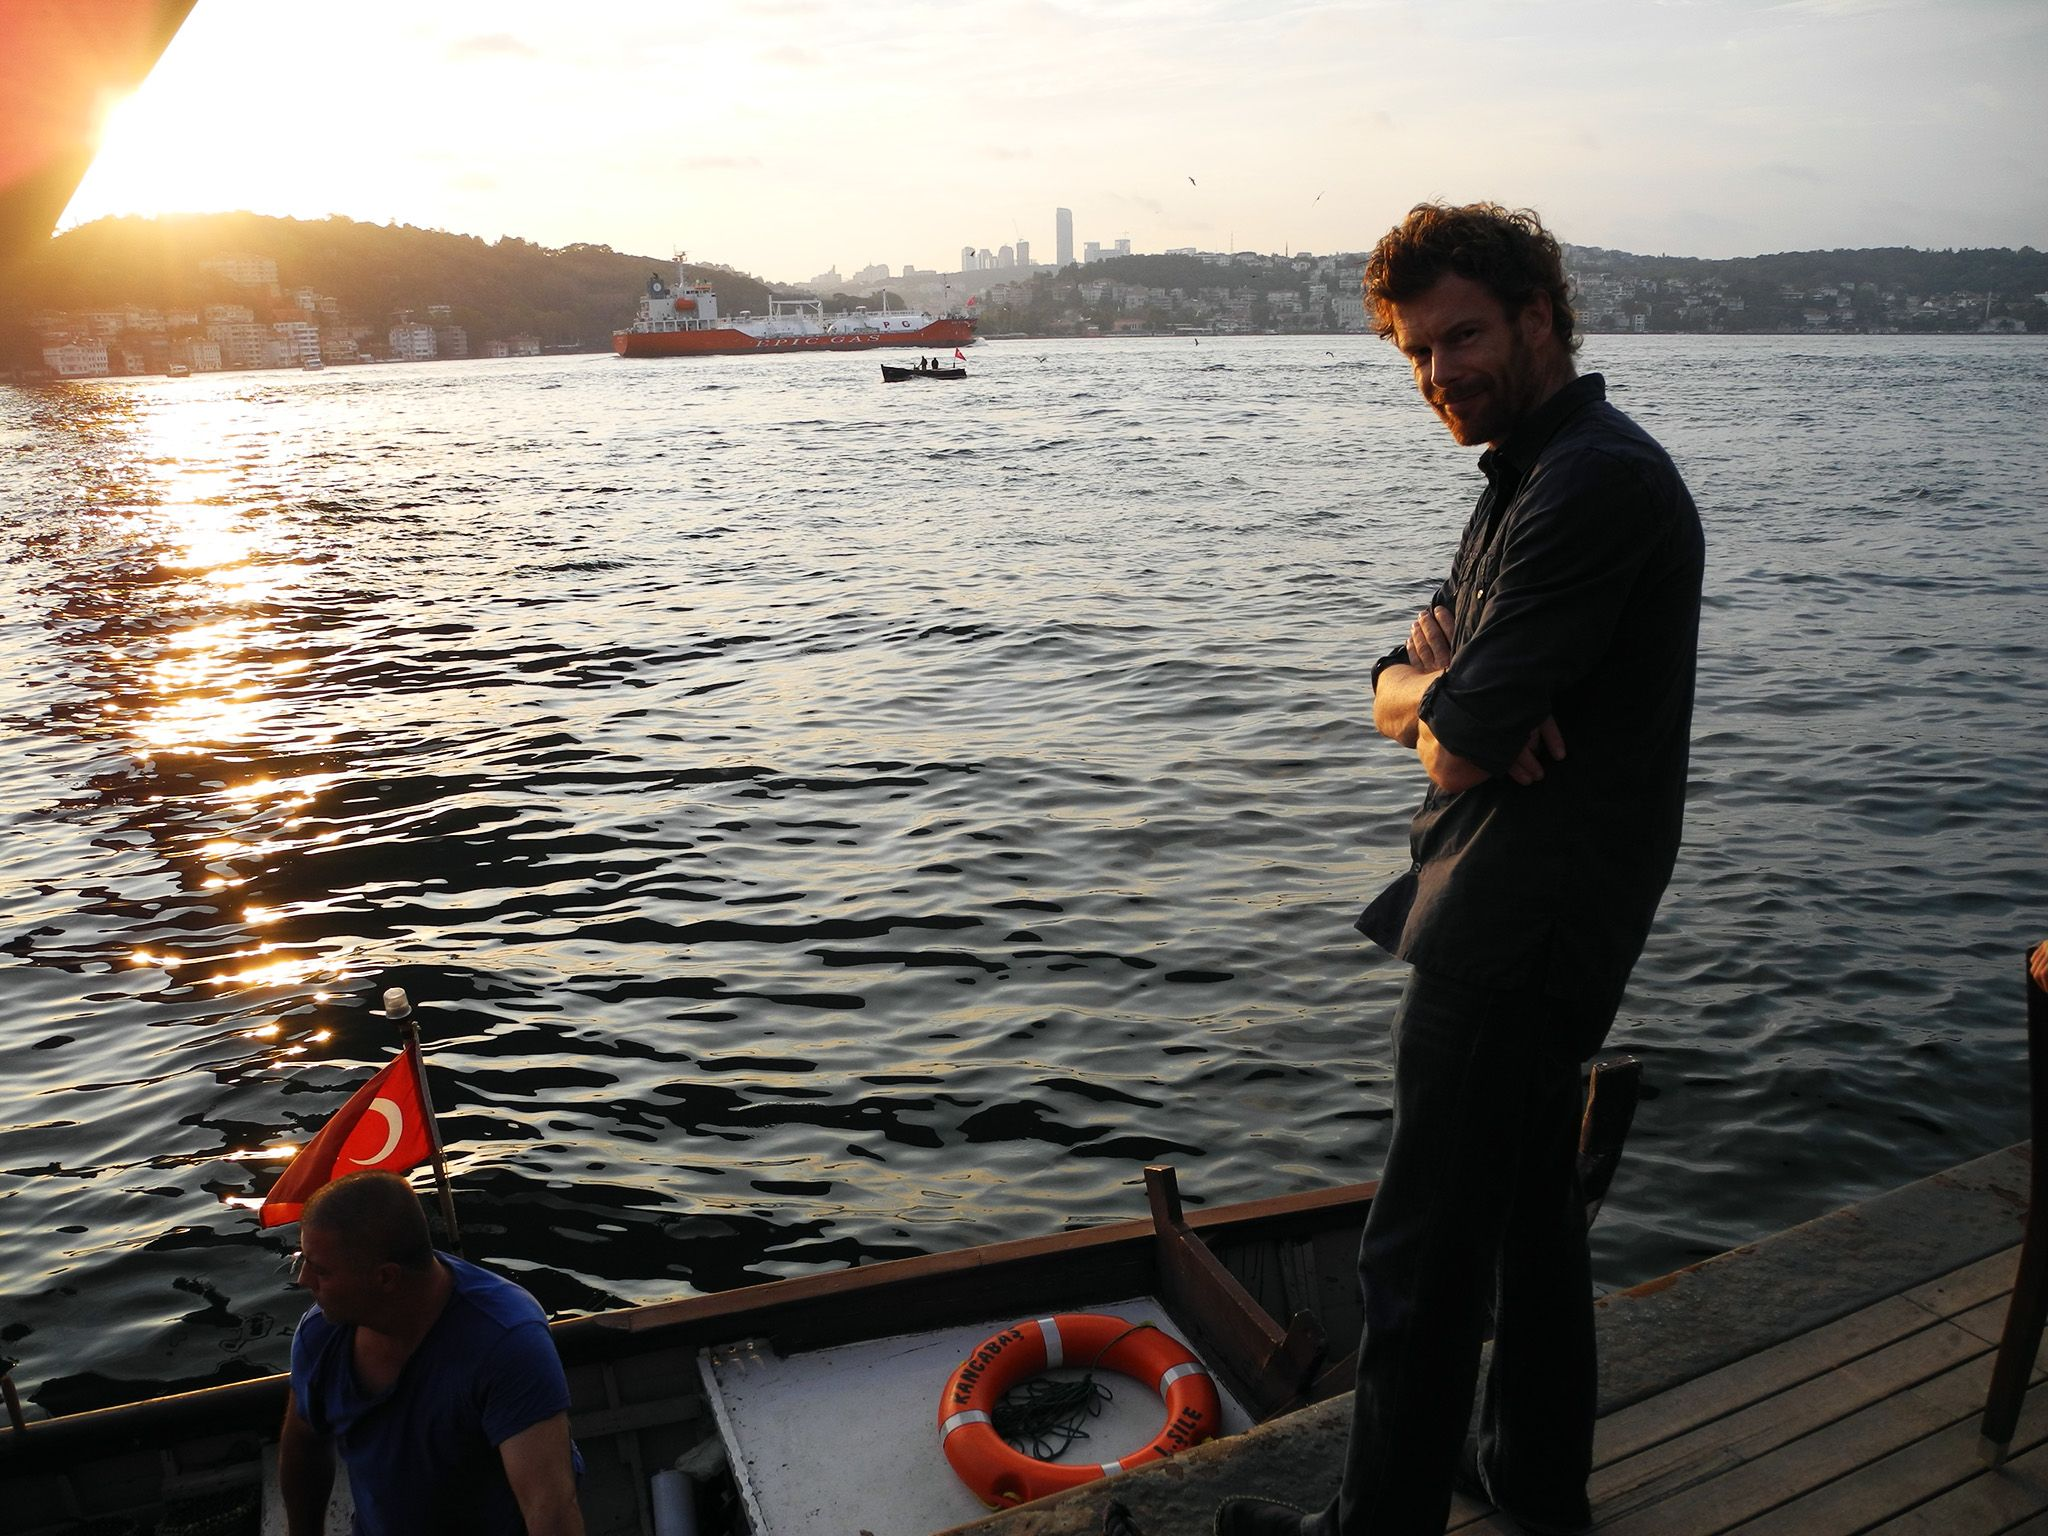 In this episode, Tom is on exploration for Istanbul's essential food element – Water.... [Photo of the day - 十月 2015]